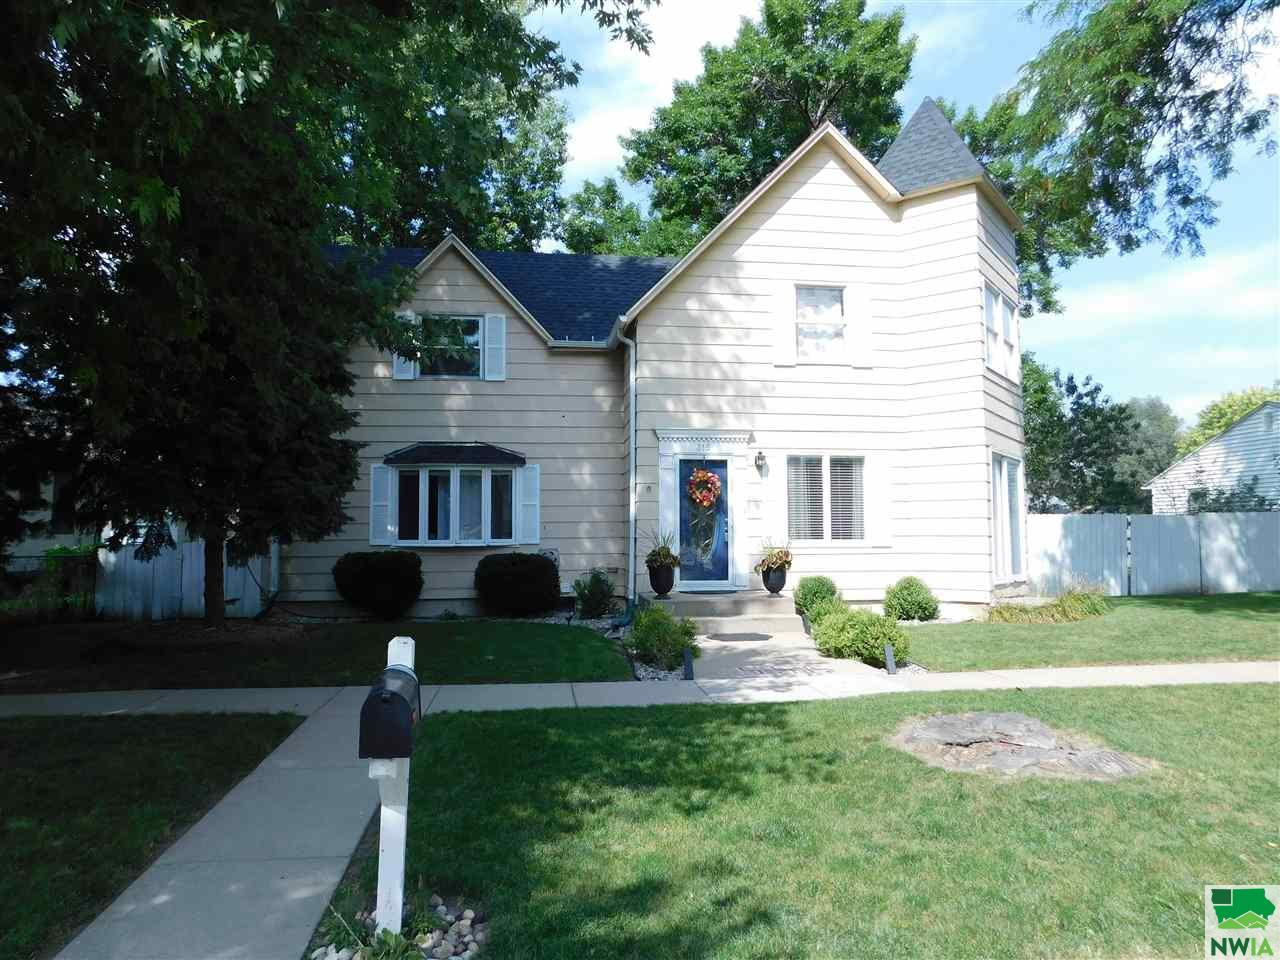 Property for sale at 315 E 23rd, South Sioux City,  NE 68776